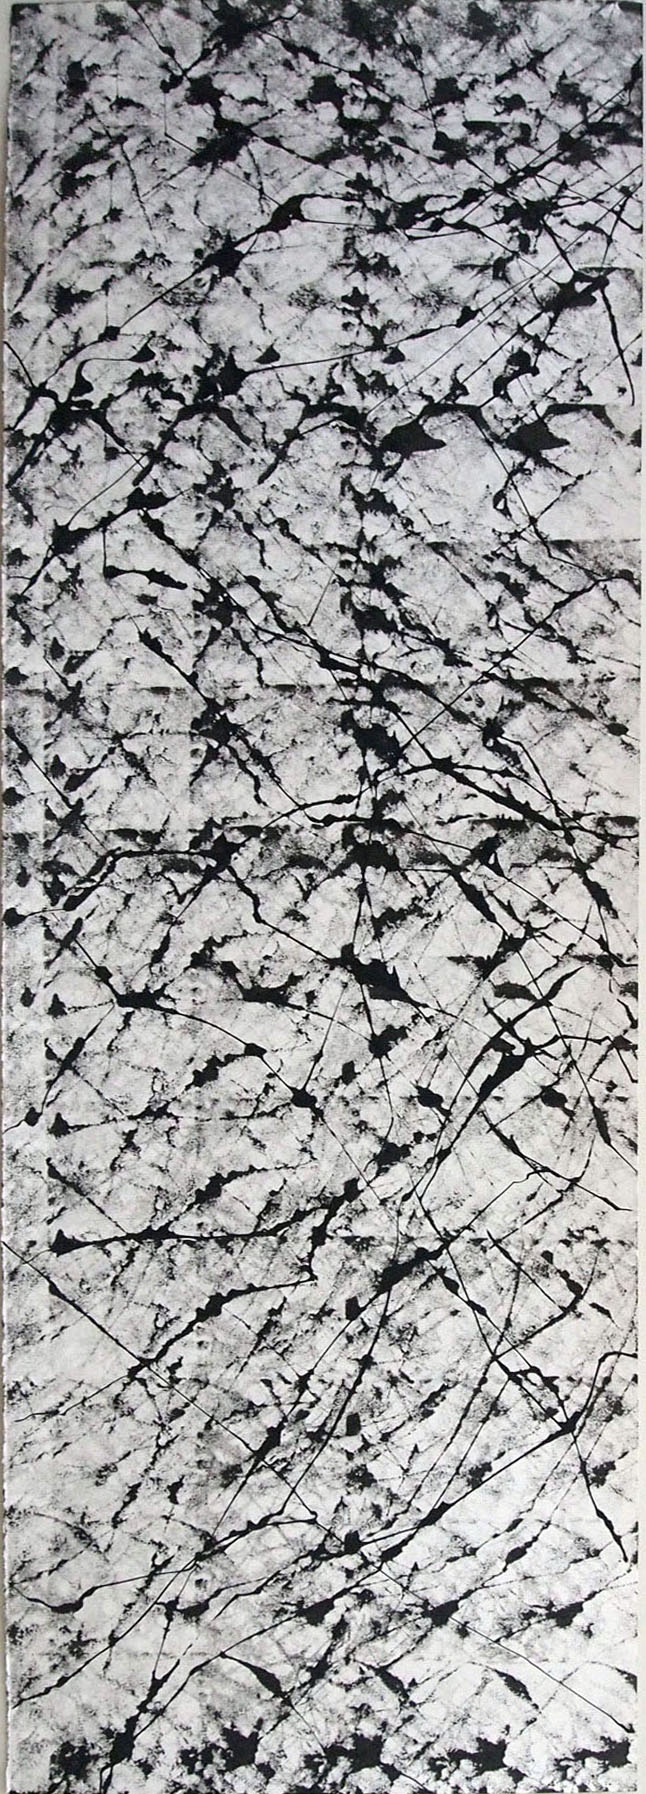 Untitled, 66 x 22 in, ink on paper, 2012